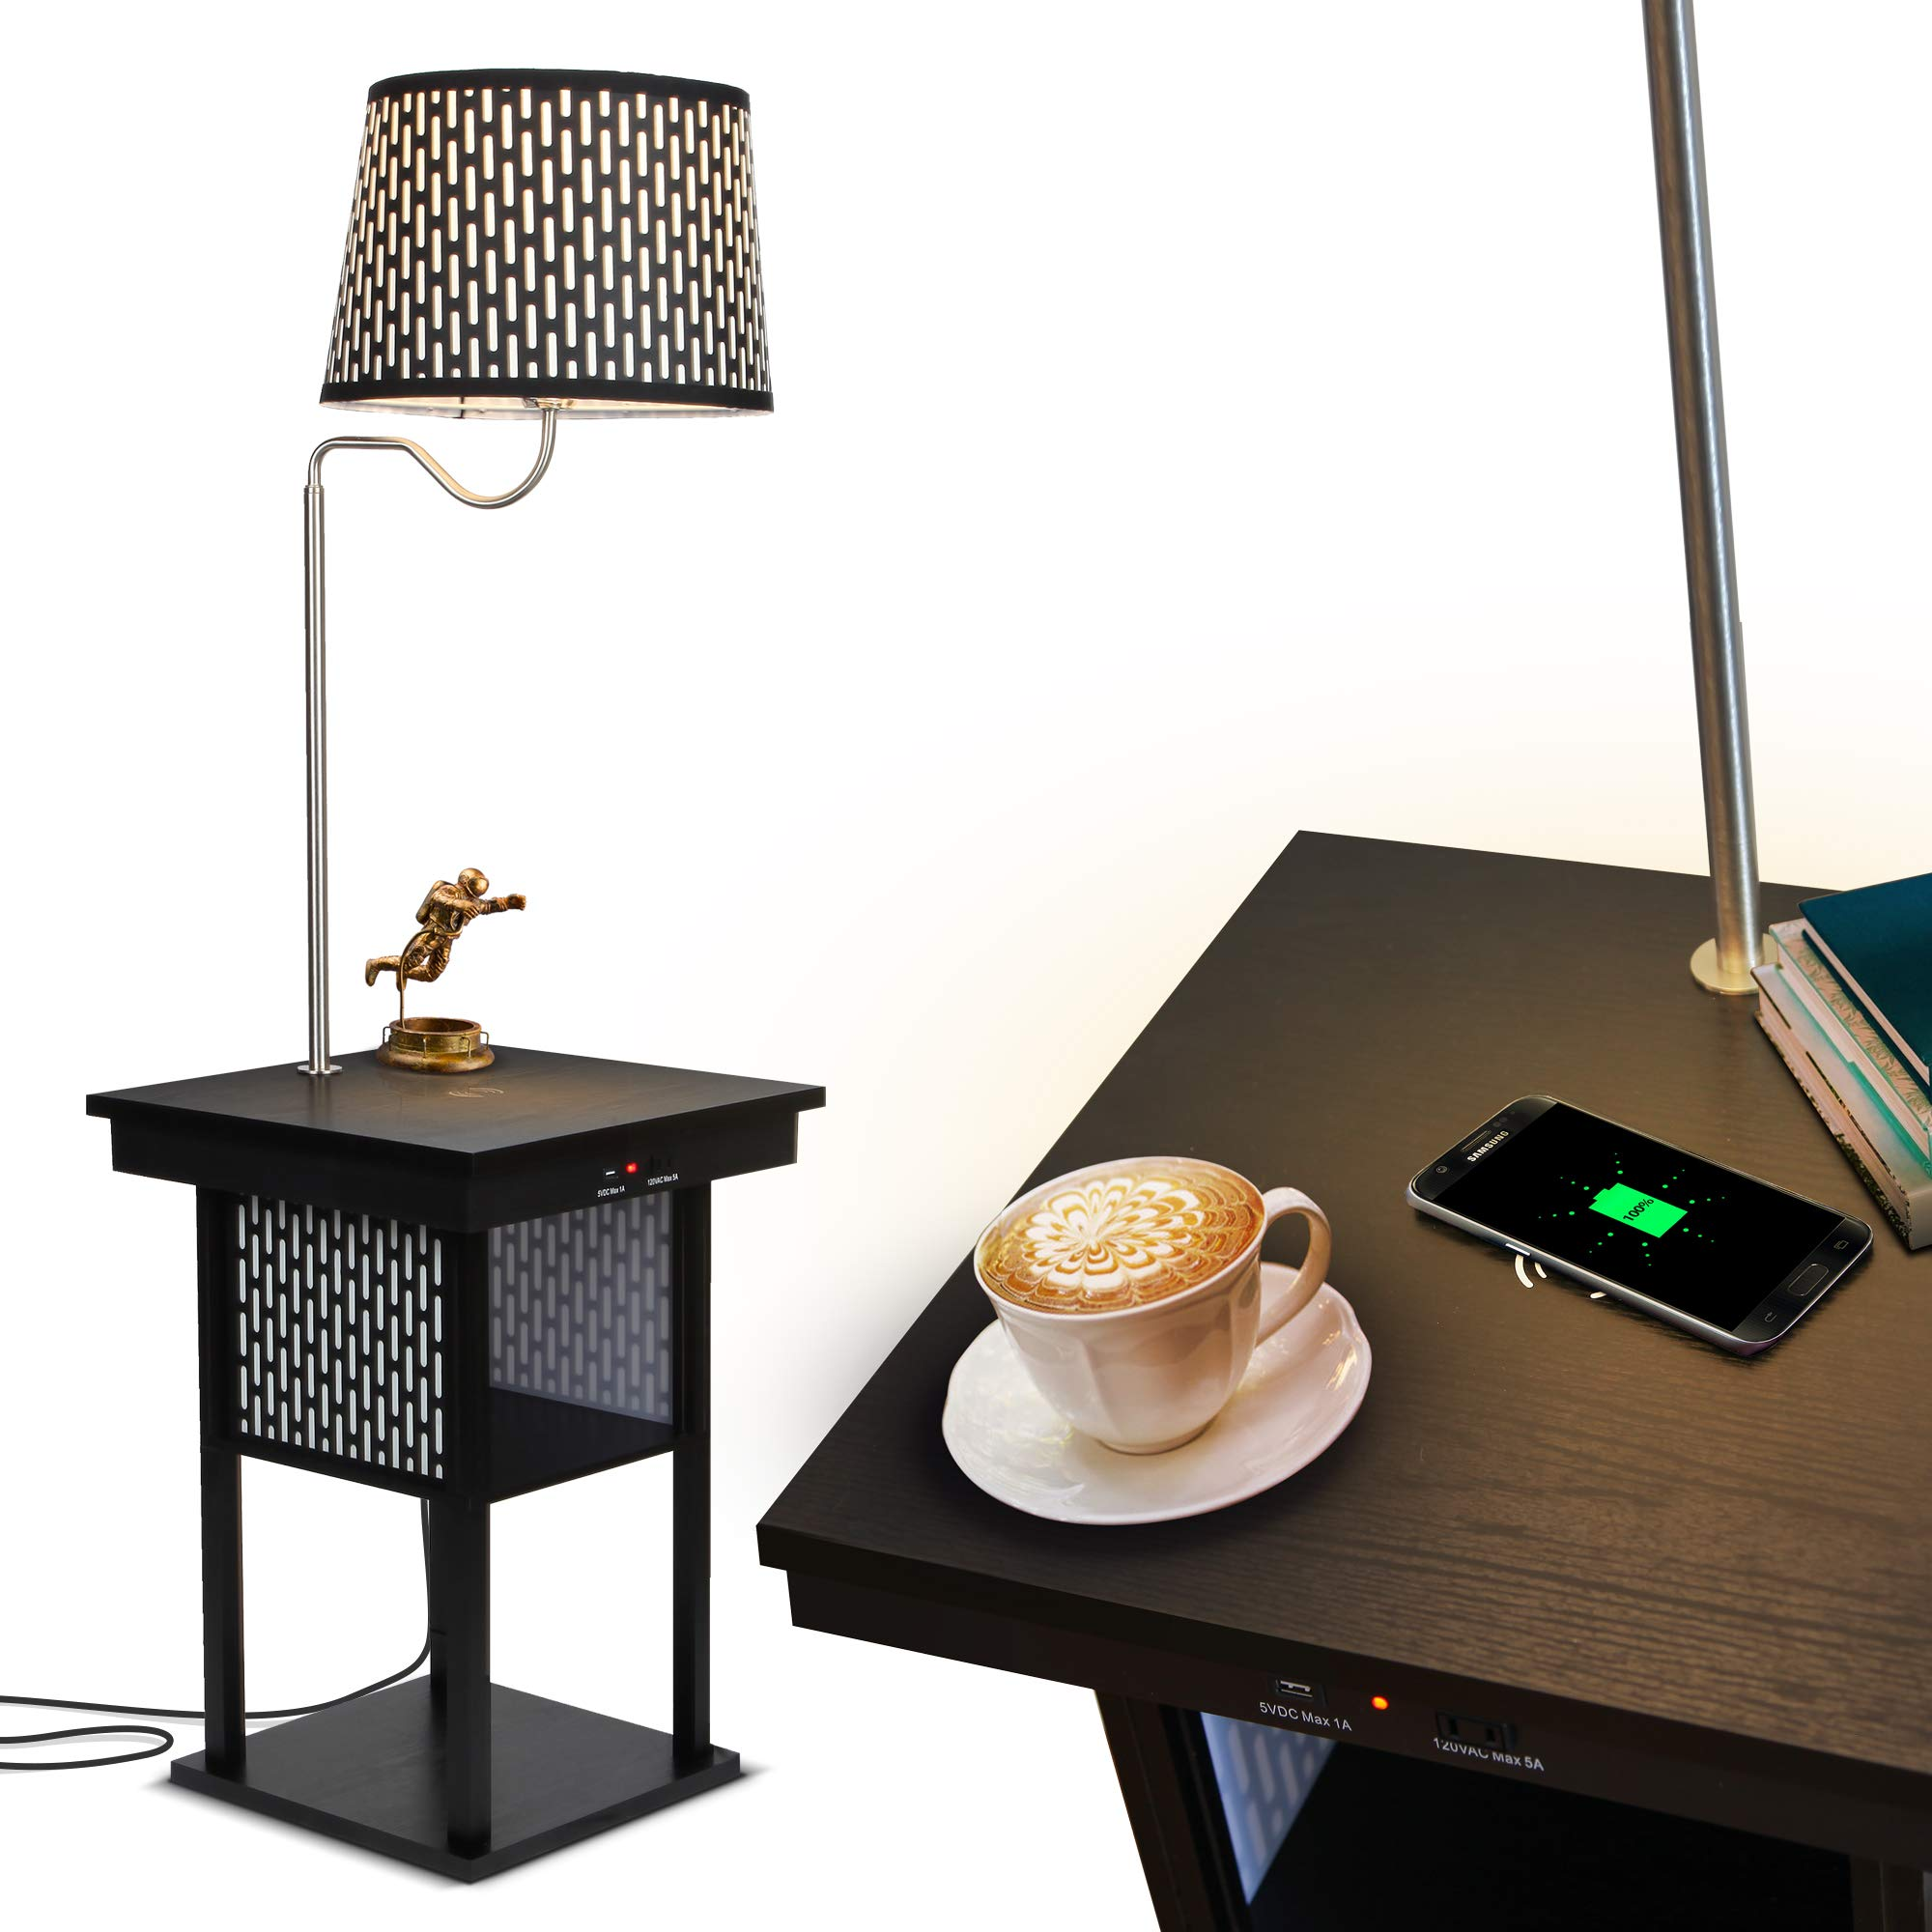 Brightech - Madison LED Floor lamp with Wireless Charging Pad & USB Port, Shelves & Bedside Table Nighstand with Lamp attached - Mid Century Modern End Table for Living Rooms - Classic Black